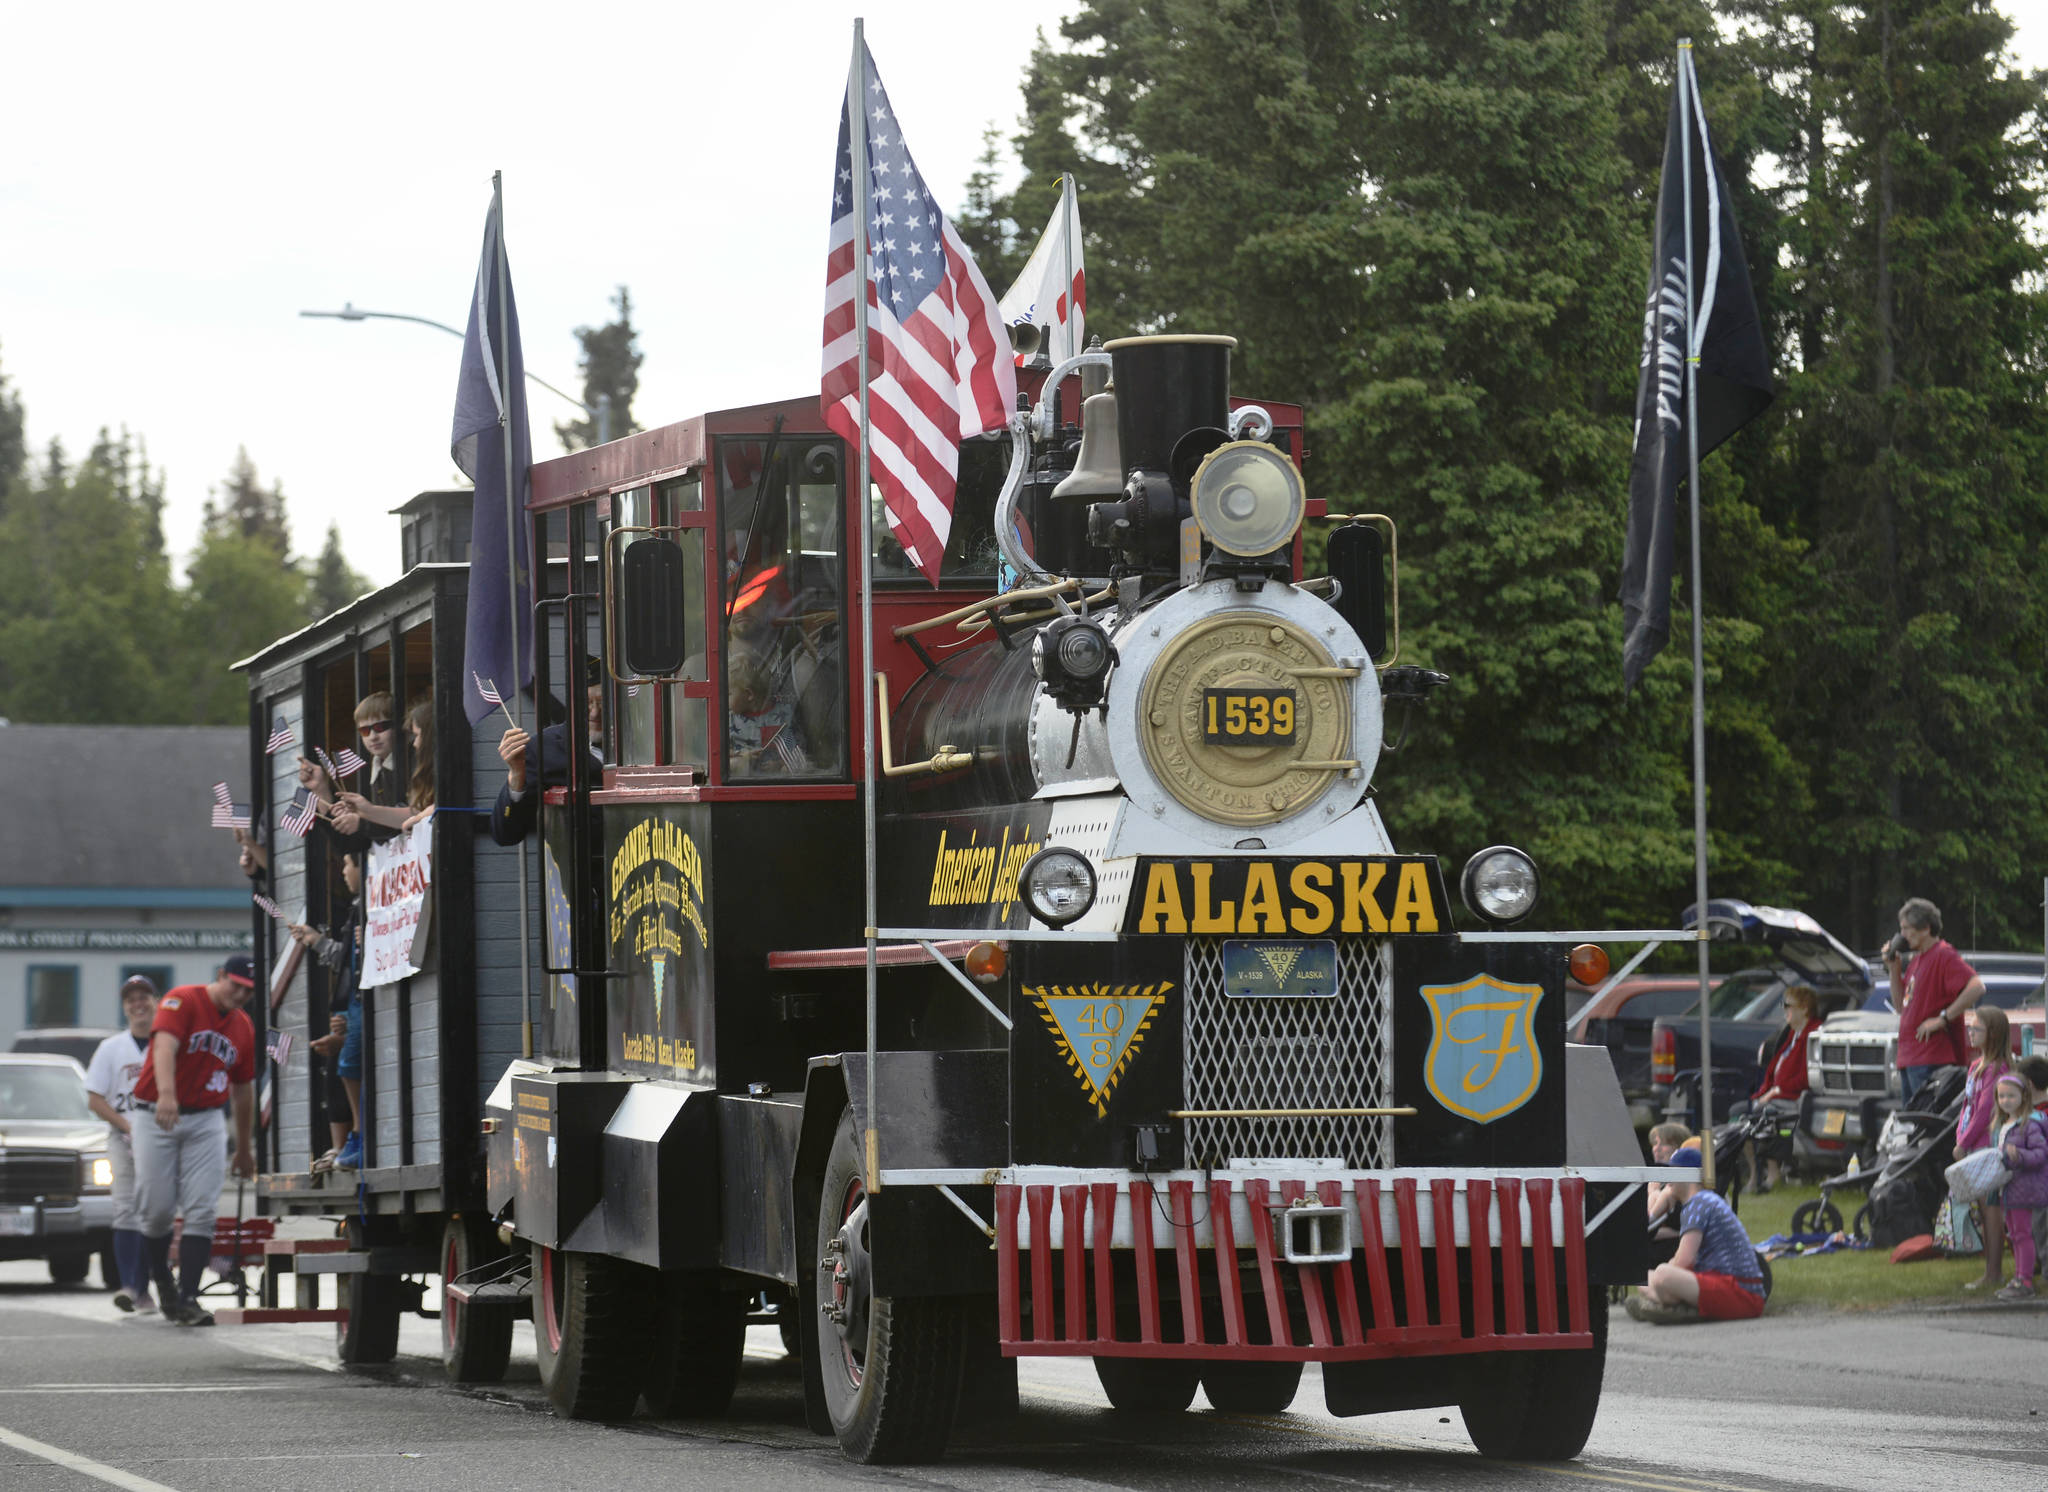 Kenai's American Legion Post 20 drives their truck remodeled as a steam locomotive during Kenai's Fourth of July parade on Wednesday, July 4, 2018 in Kenai, Alaska. Aboard are members of the Legion-sponsored Twins baseball team. (Ben Boettger/Peninsula Clarion)                                   Snare drummers from Kenai Central High School's drumline perform in the Kenai's Fourth of July parade on Wednesday, July 4, 2018 in Kenai, Alaska. (Ben Boettger/Peninsula Clarion)                                  Wildland firefighters from the Alaska Division of Forestry march in Kenai's Fourth of July parade on Wednesday, July 4 in Kenai, Alaska. (Ben Boettger/Peninsula Clarion)